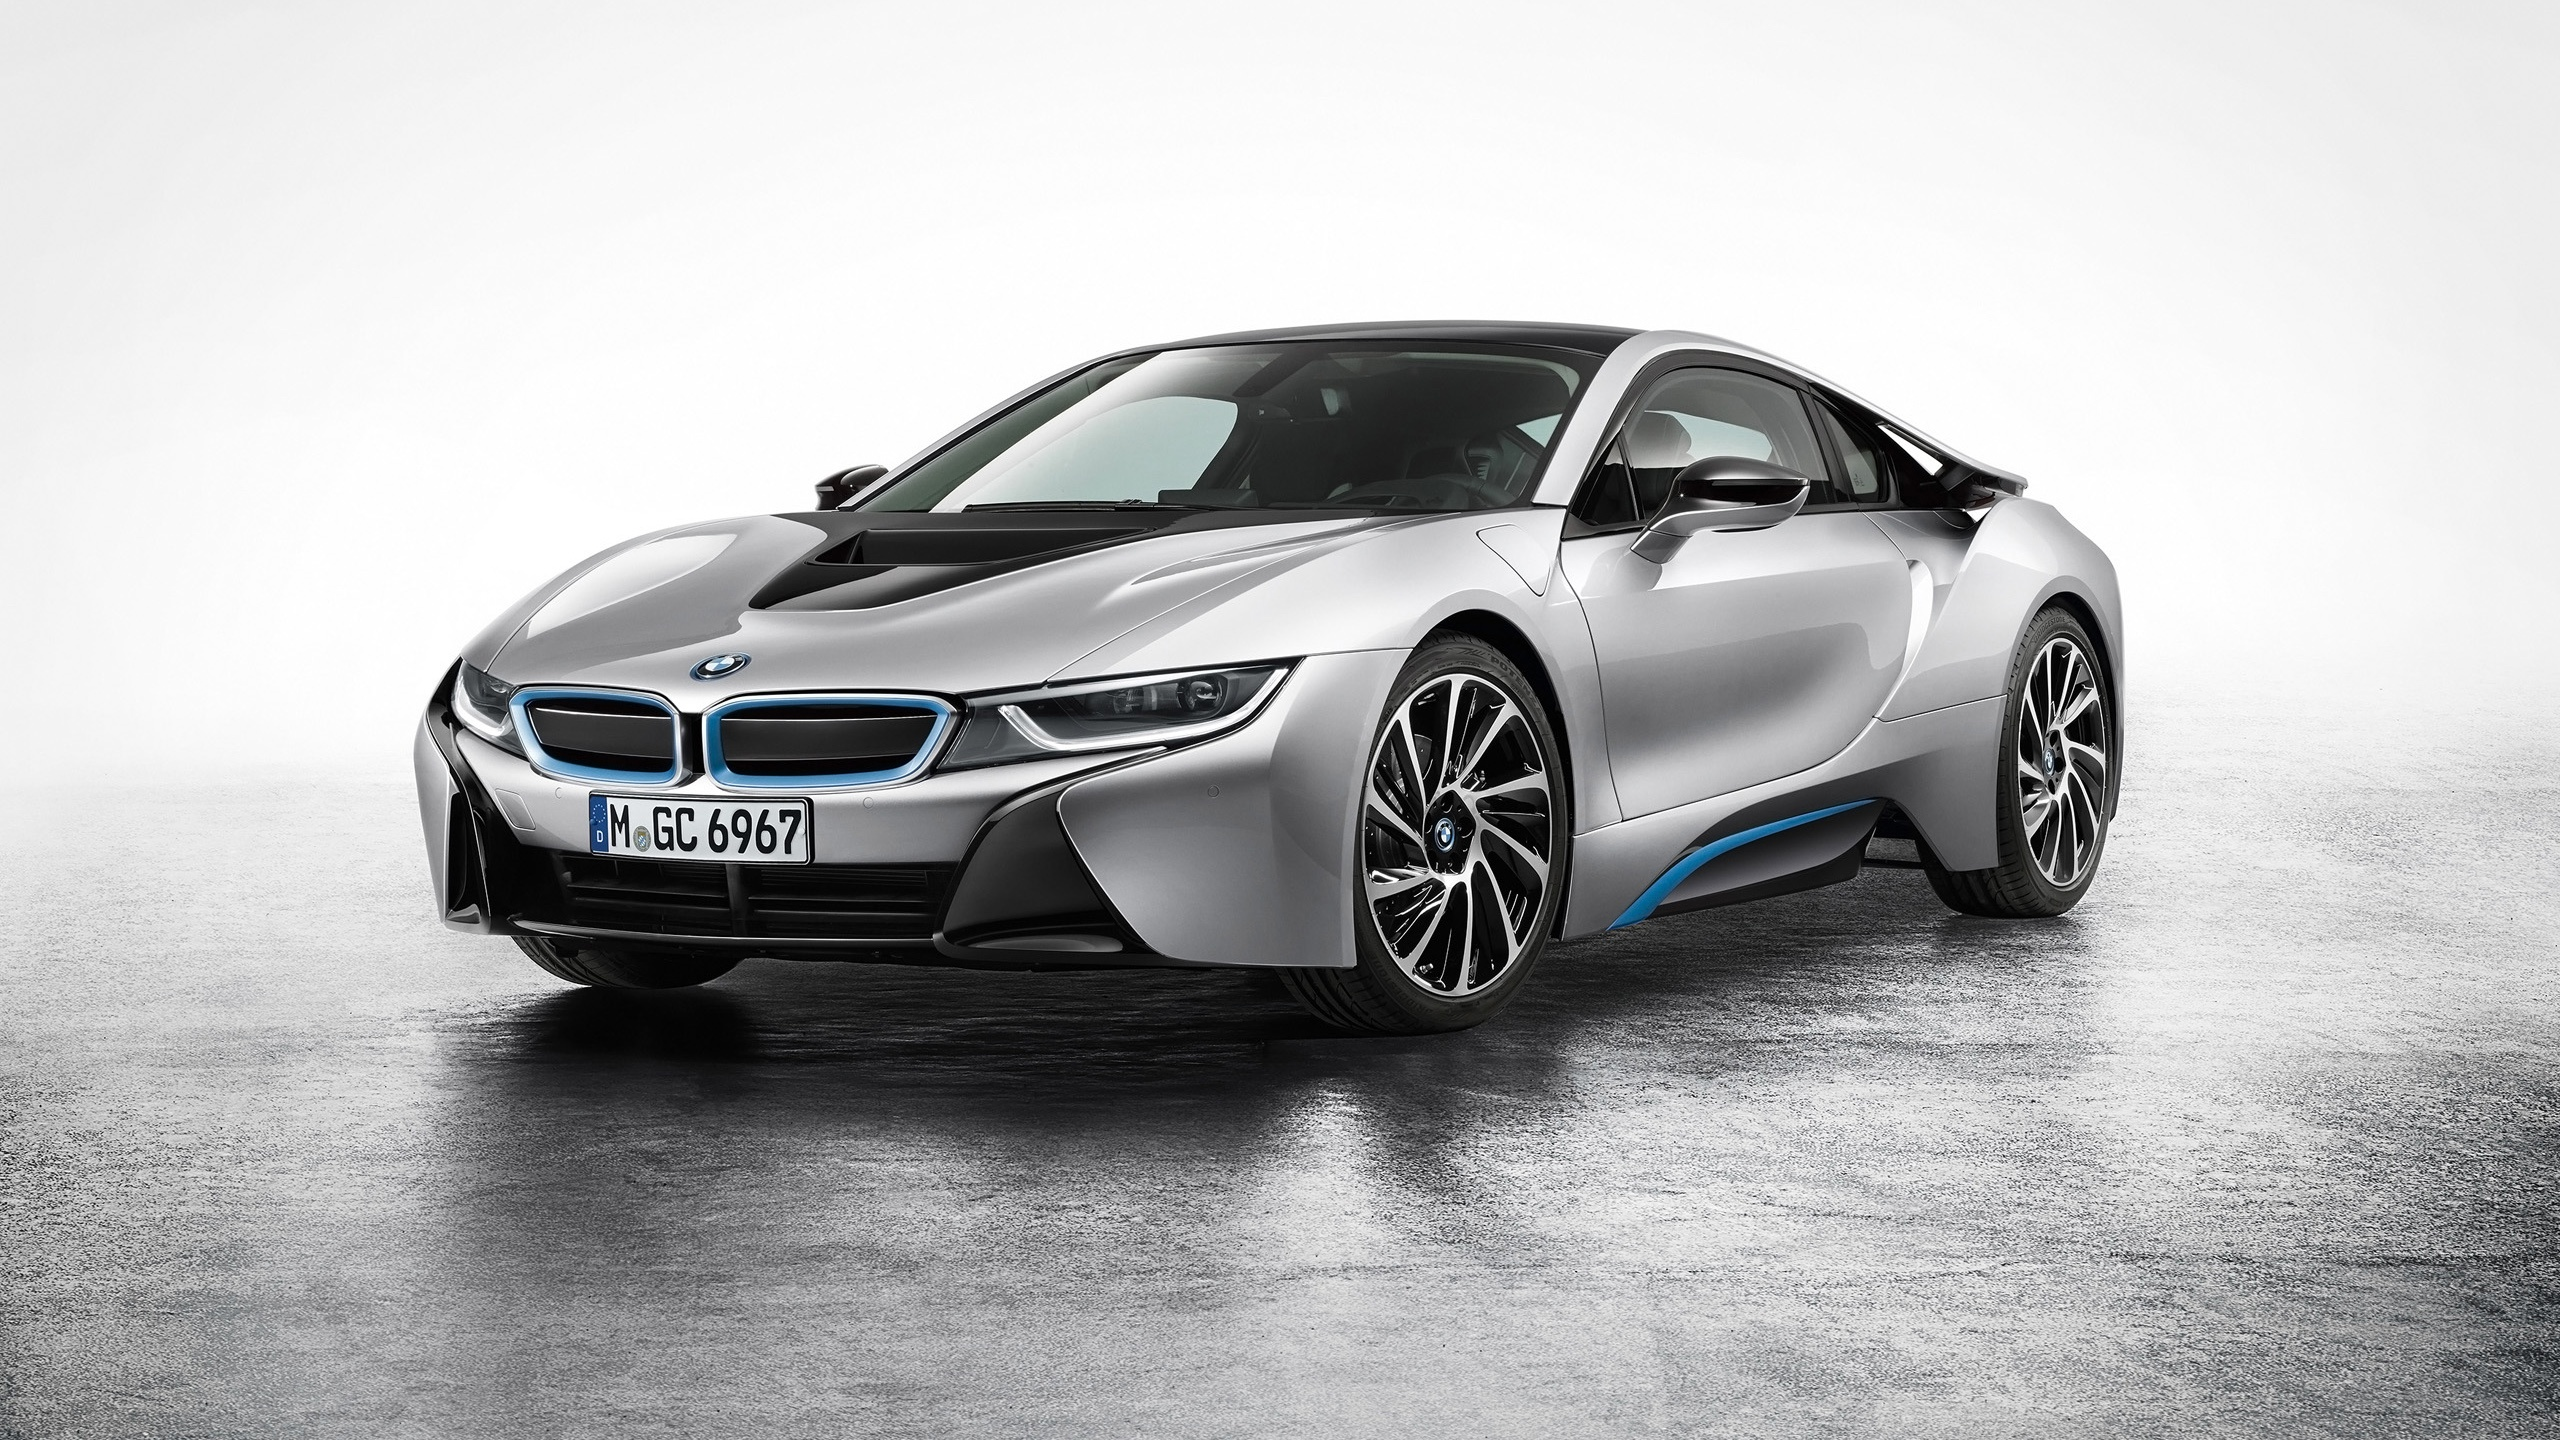 Bmw I8 2015 Wallpapers In Jpg Format For Free Download